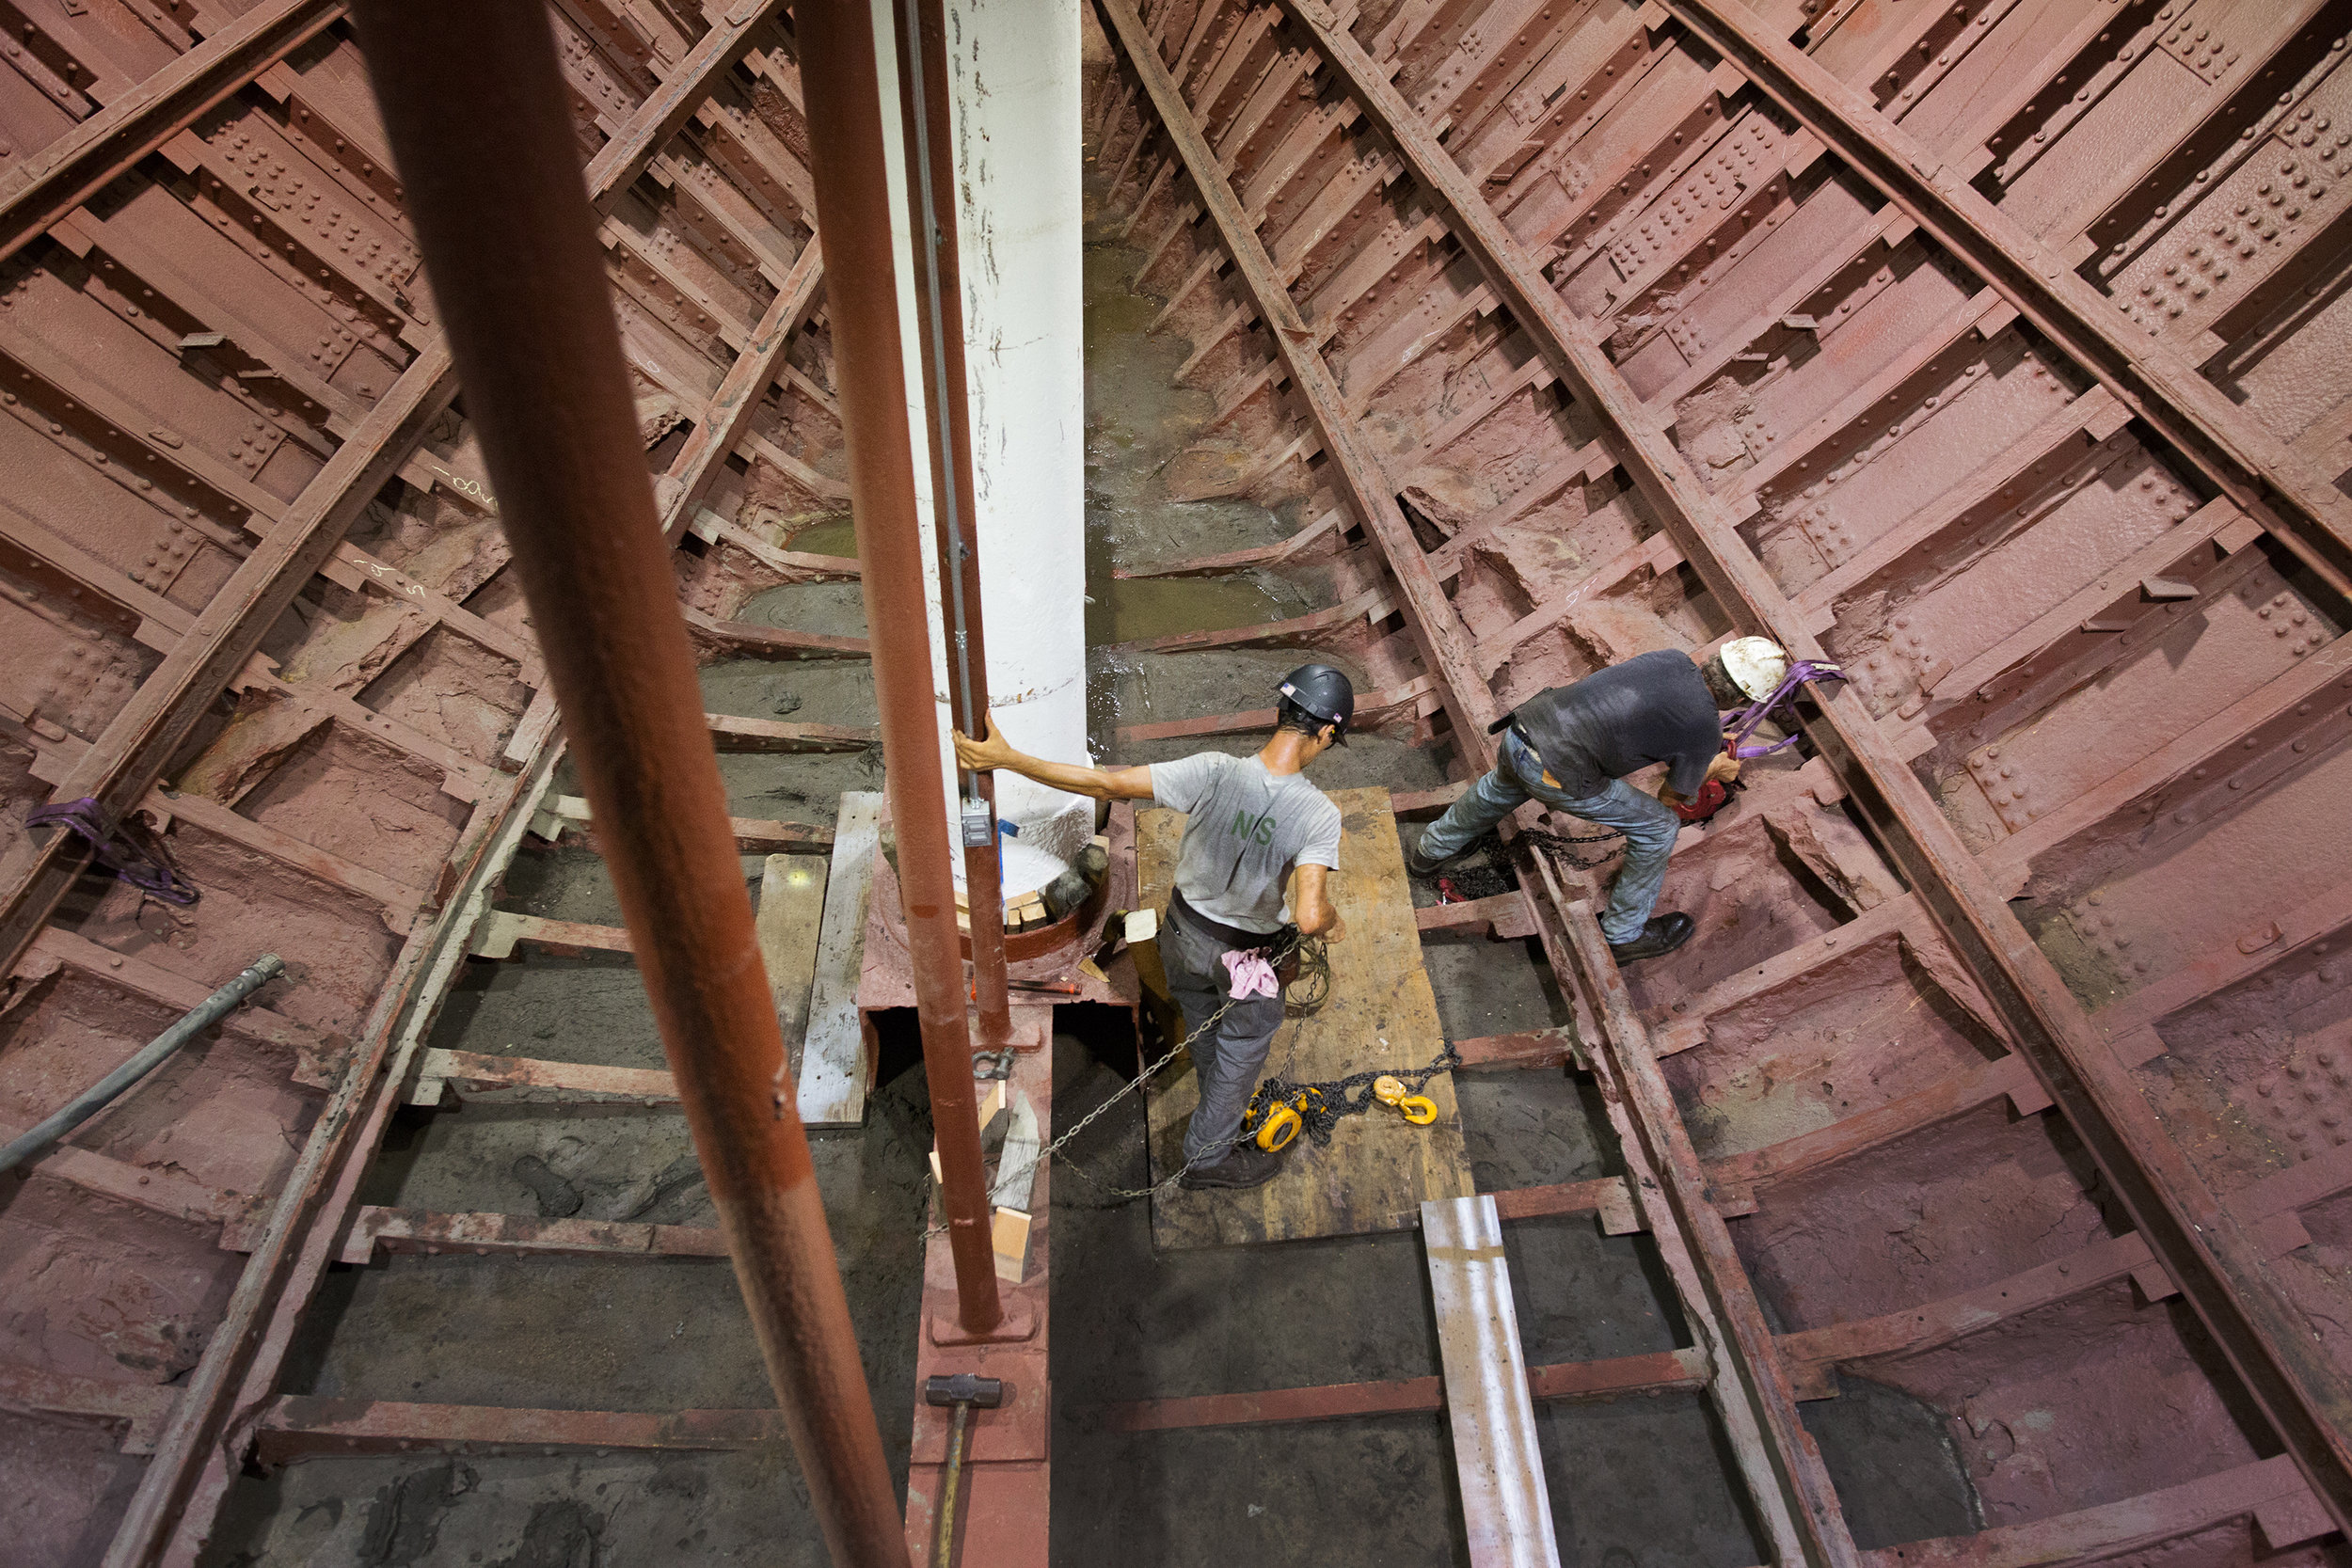 Riggers installing a mast at the hull of the Wavertree, a cargo sailing ship built in 1885. The ship belongs to the Seaport Museum and is undergoing a restoration at Caddell Dry Dock on Staten Island.